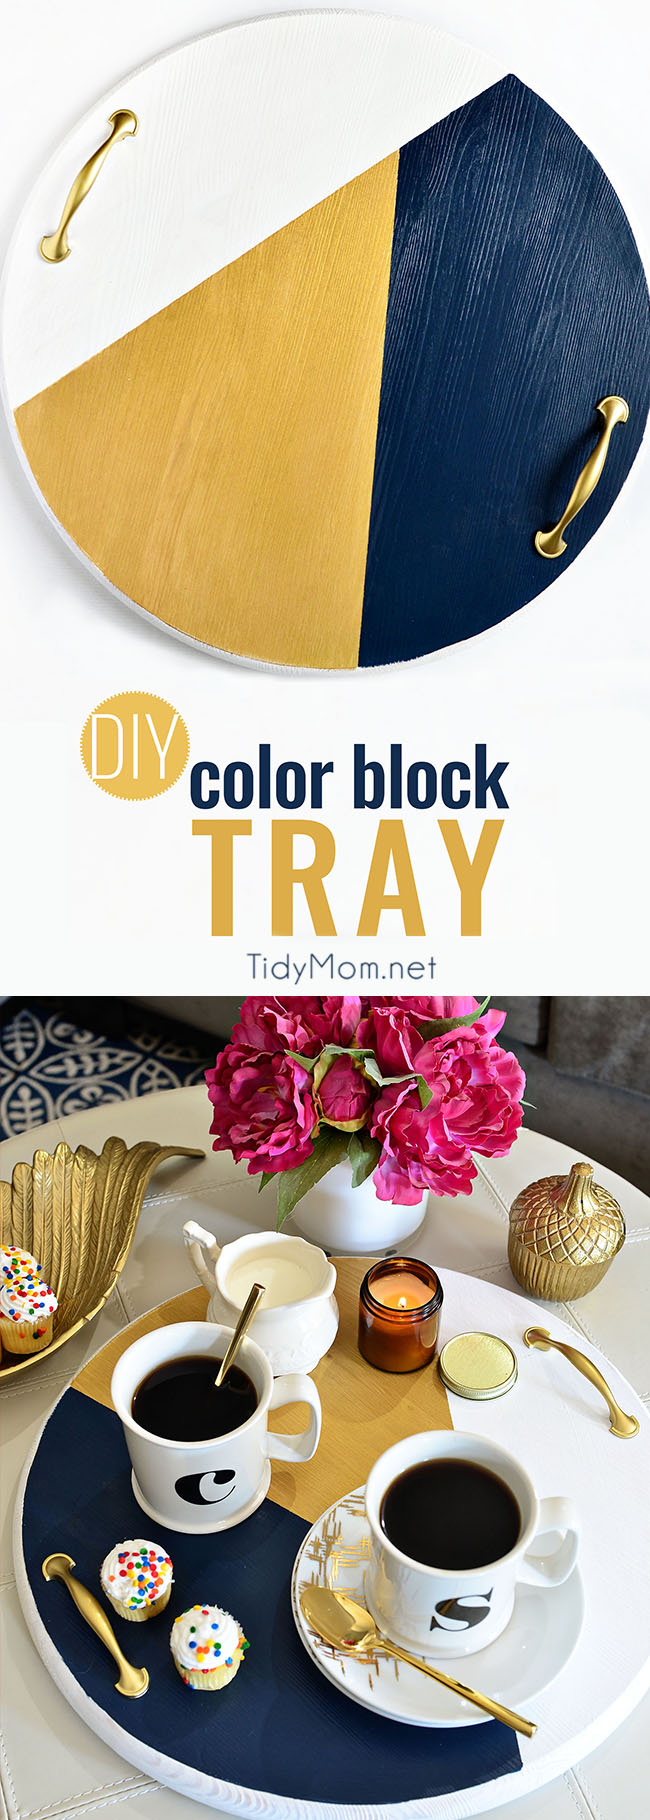 A bold colorful tray is a perfect way to add a pop of color to a space and use it as a serving tray when entertaining. The color blocking gives this tray a modern look while the touch of gold adds a little elegance!  Get the full tutorial to make your own DIY Color Block Tray at TidyMom.net #diy #crafts #colorblock #crafting #handmade